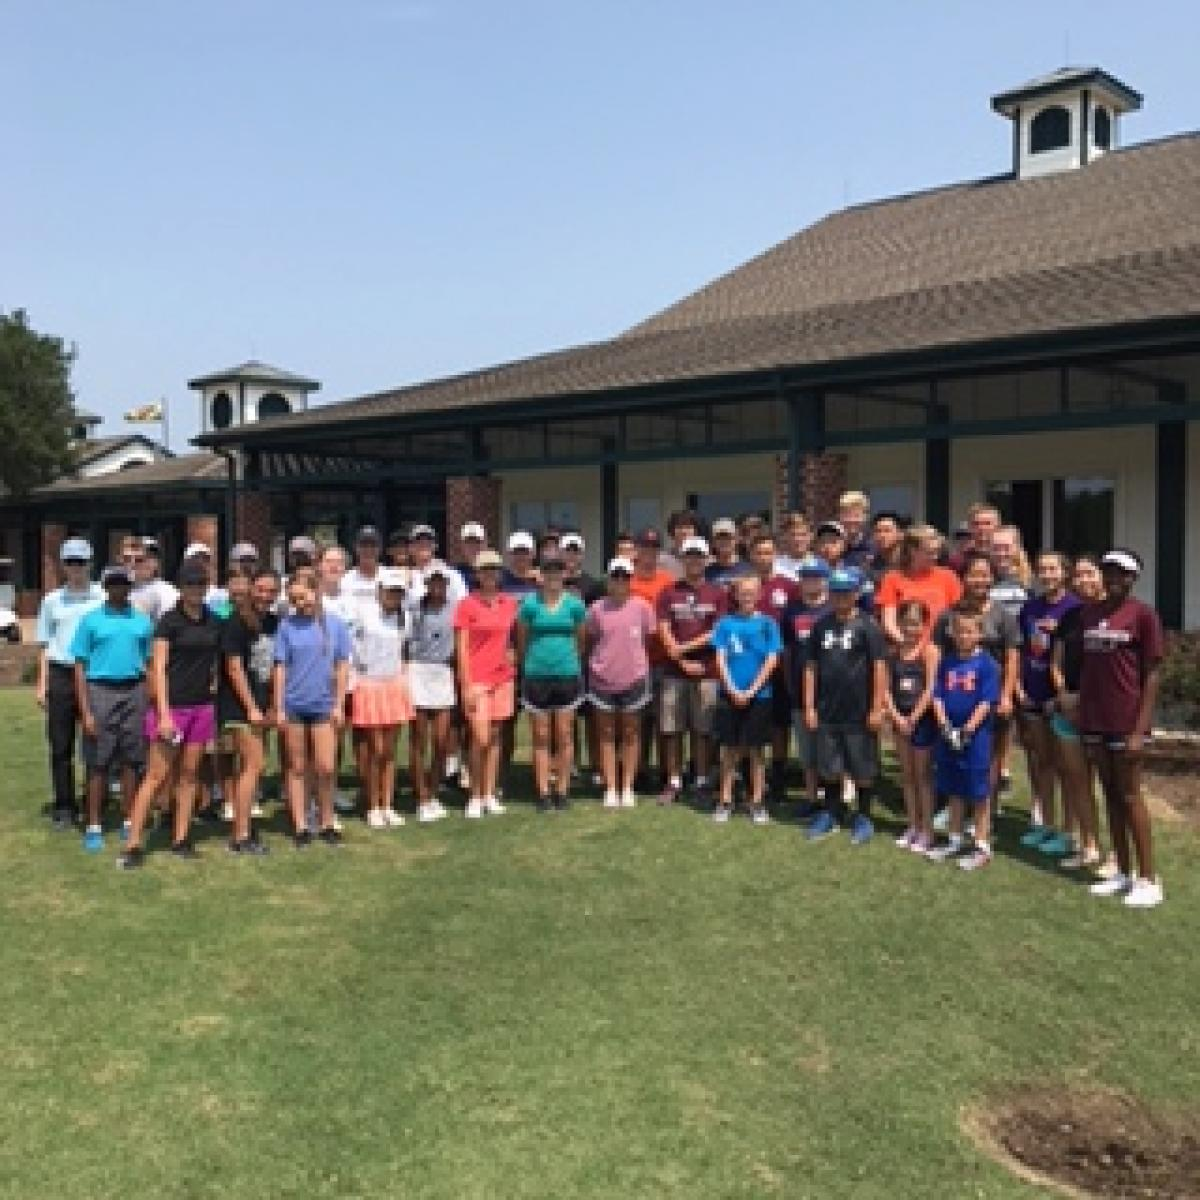 Clean up day at Meadowbrook Farms Golf Club